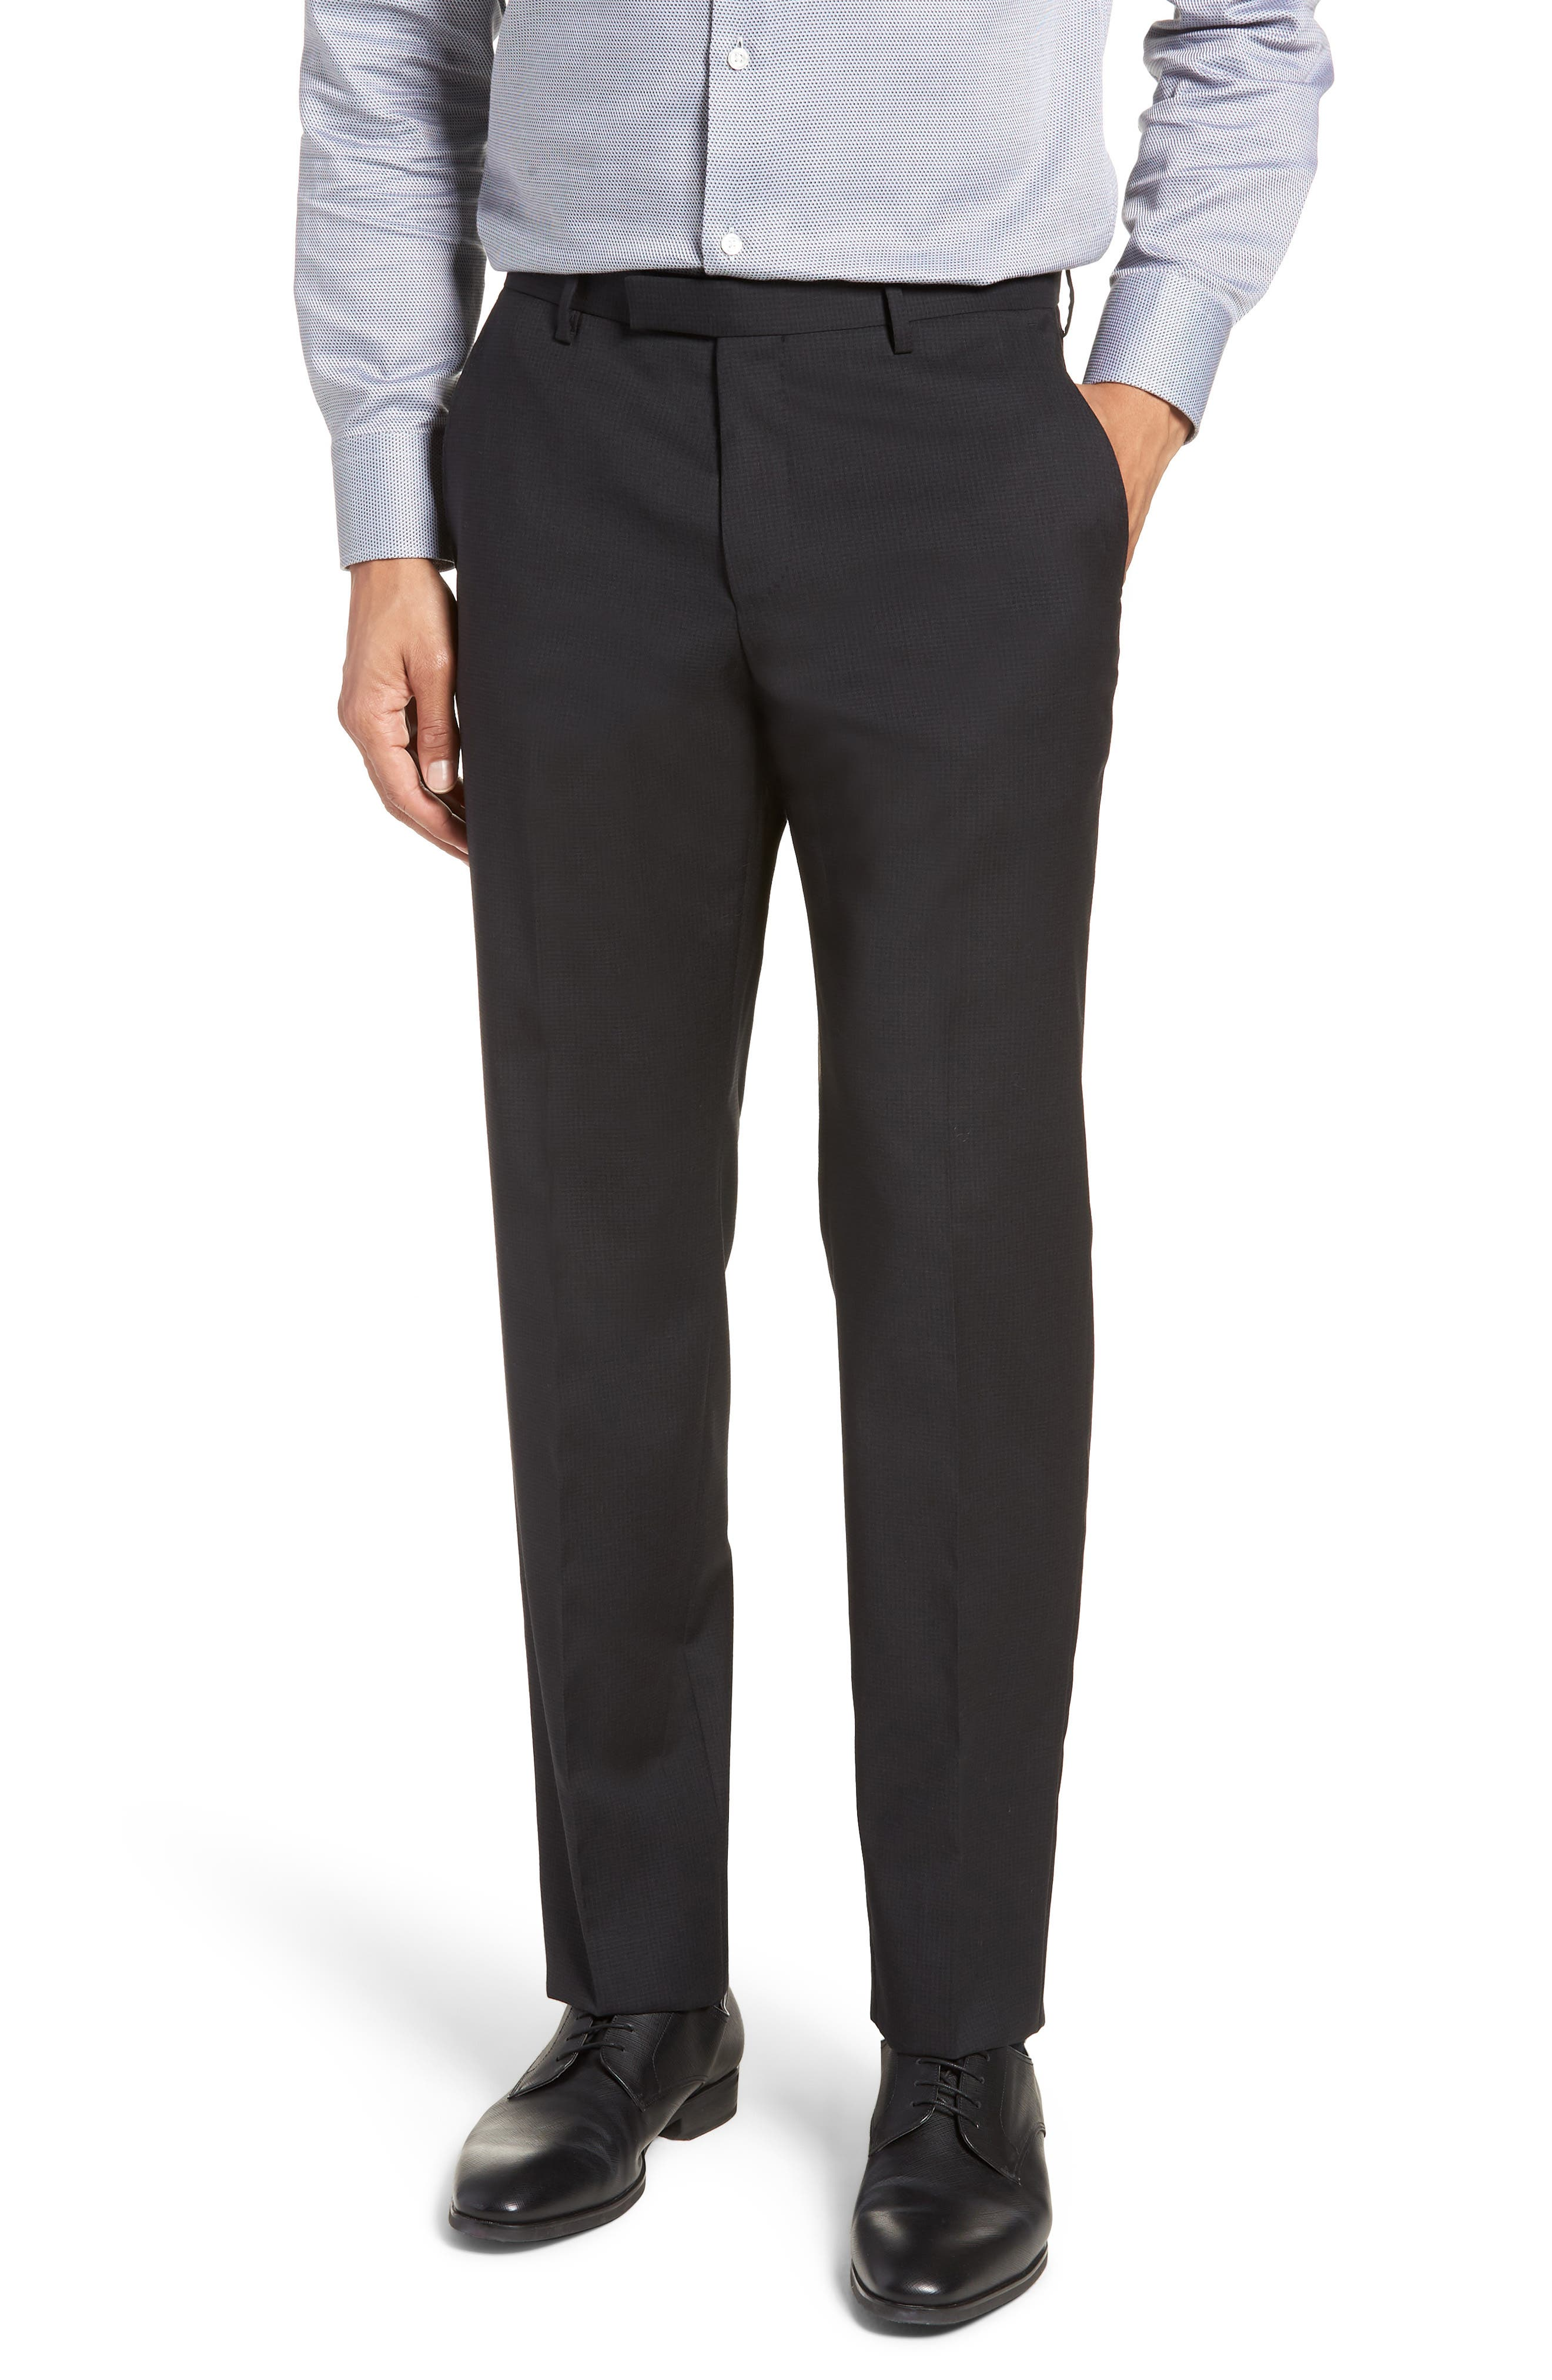 Leenon Flat Front Check Wool Trousers,                         Main,                         color, BLACK